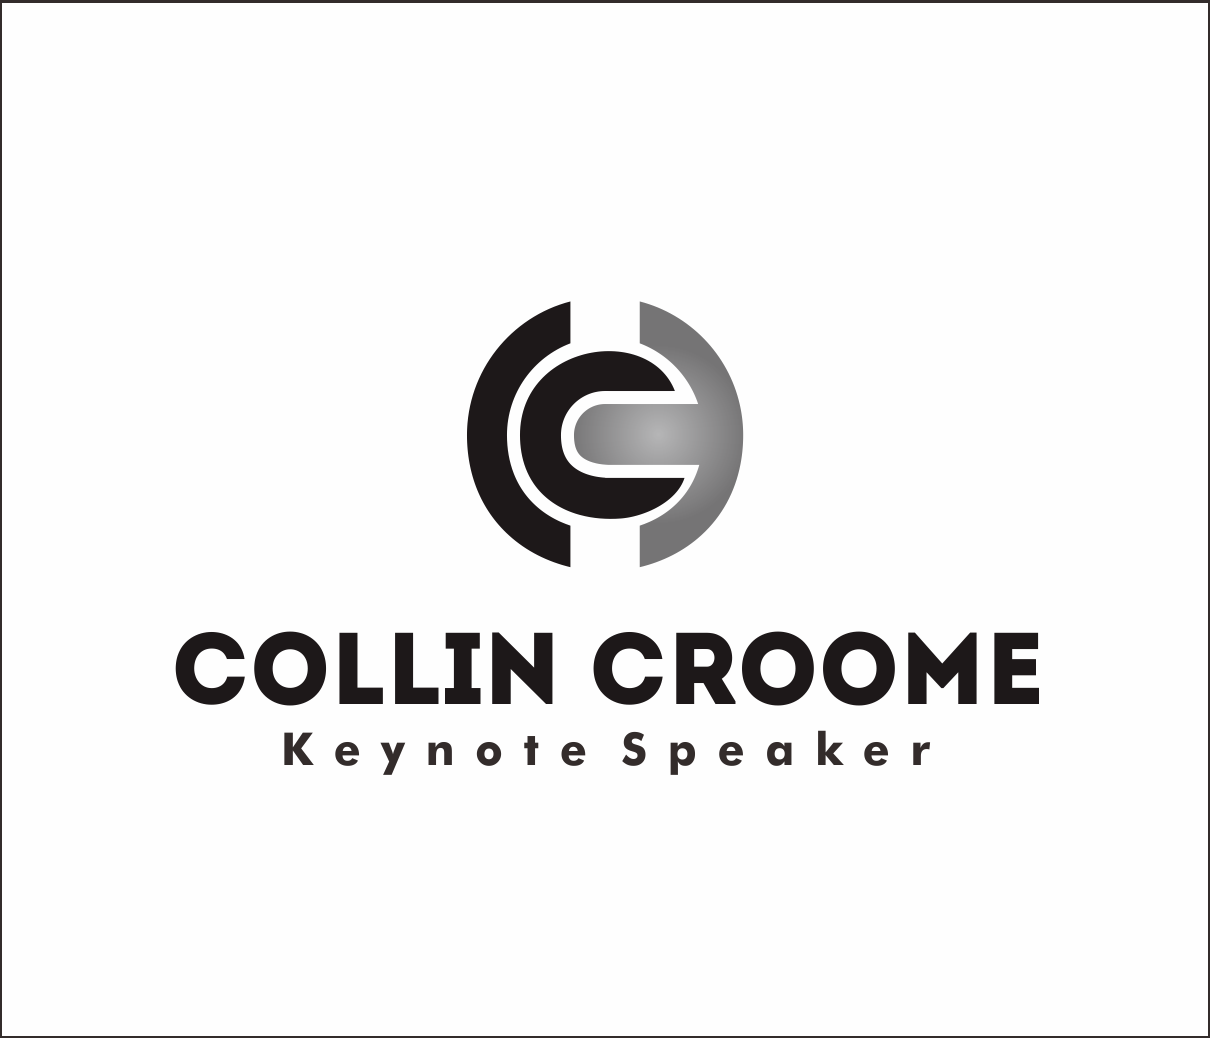 Logo Design by Armada Jamaluddin - Entry No. 158 in the Logo Design Contest Modern Logo Design for Collin Croome.